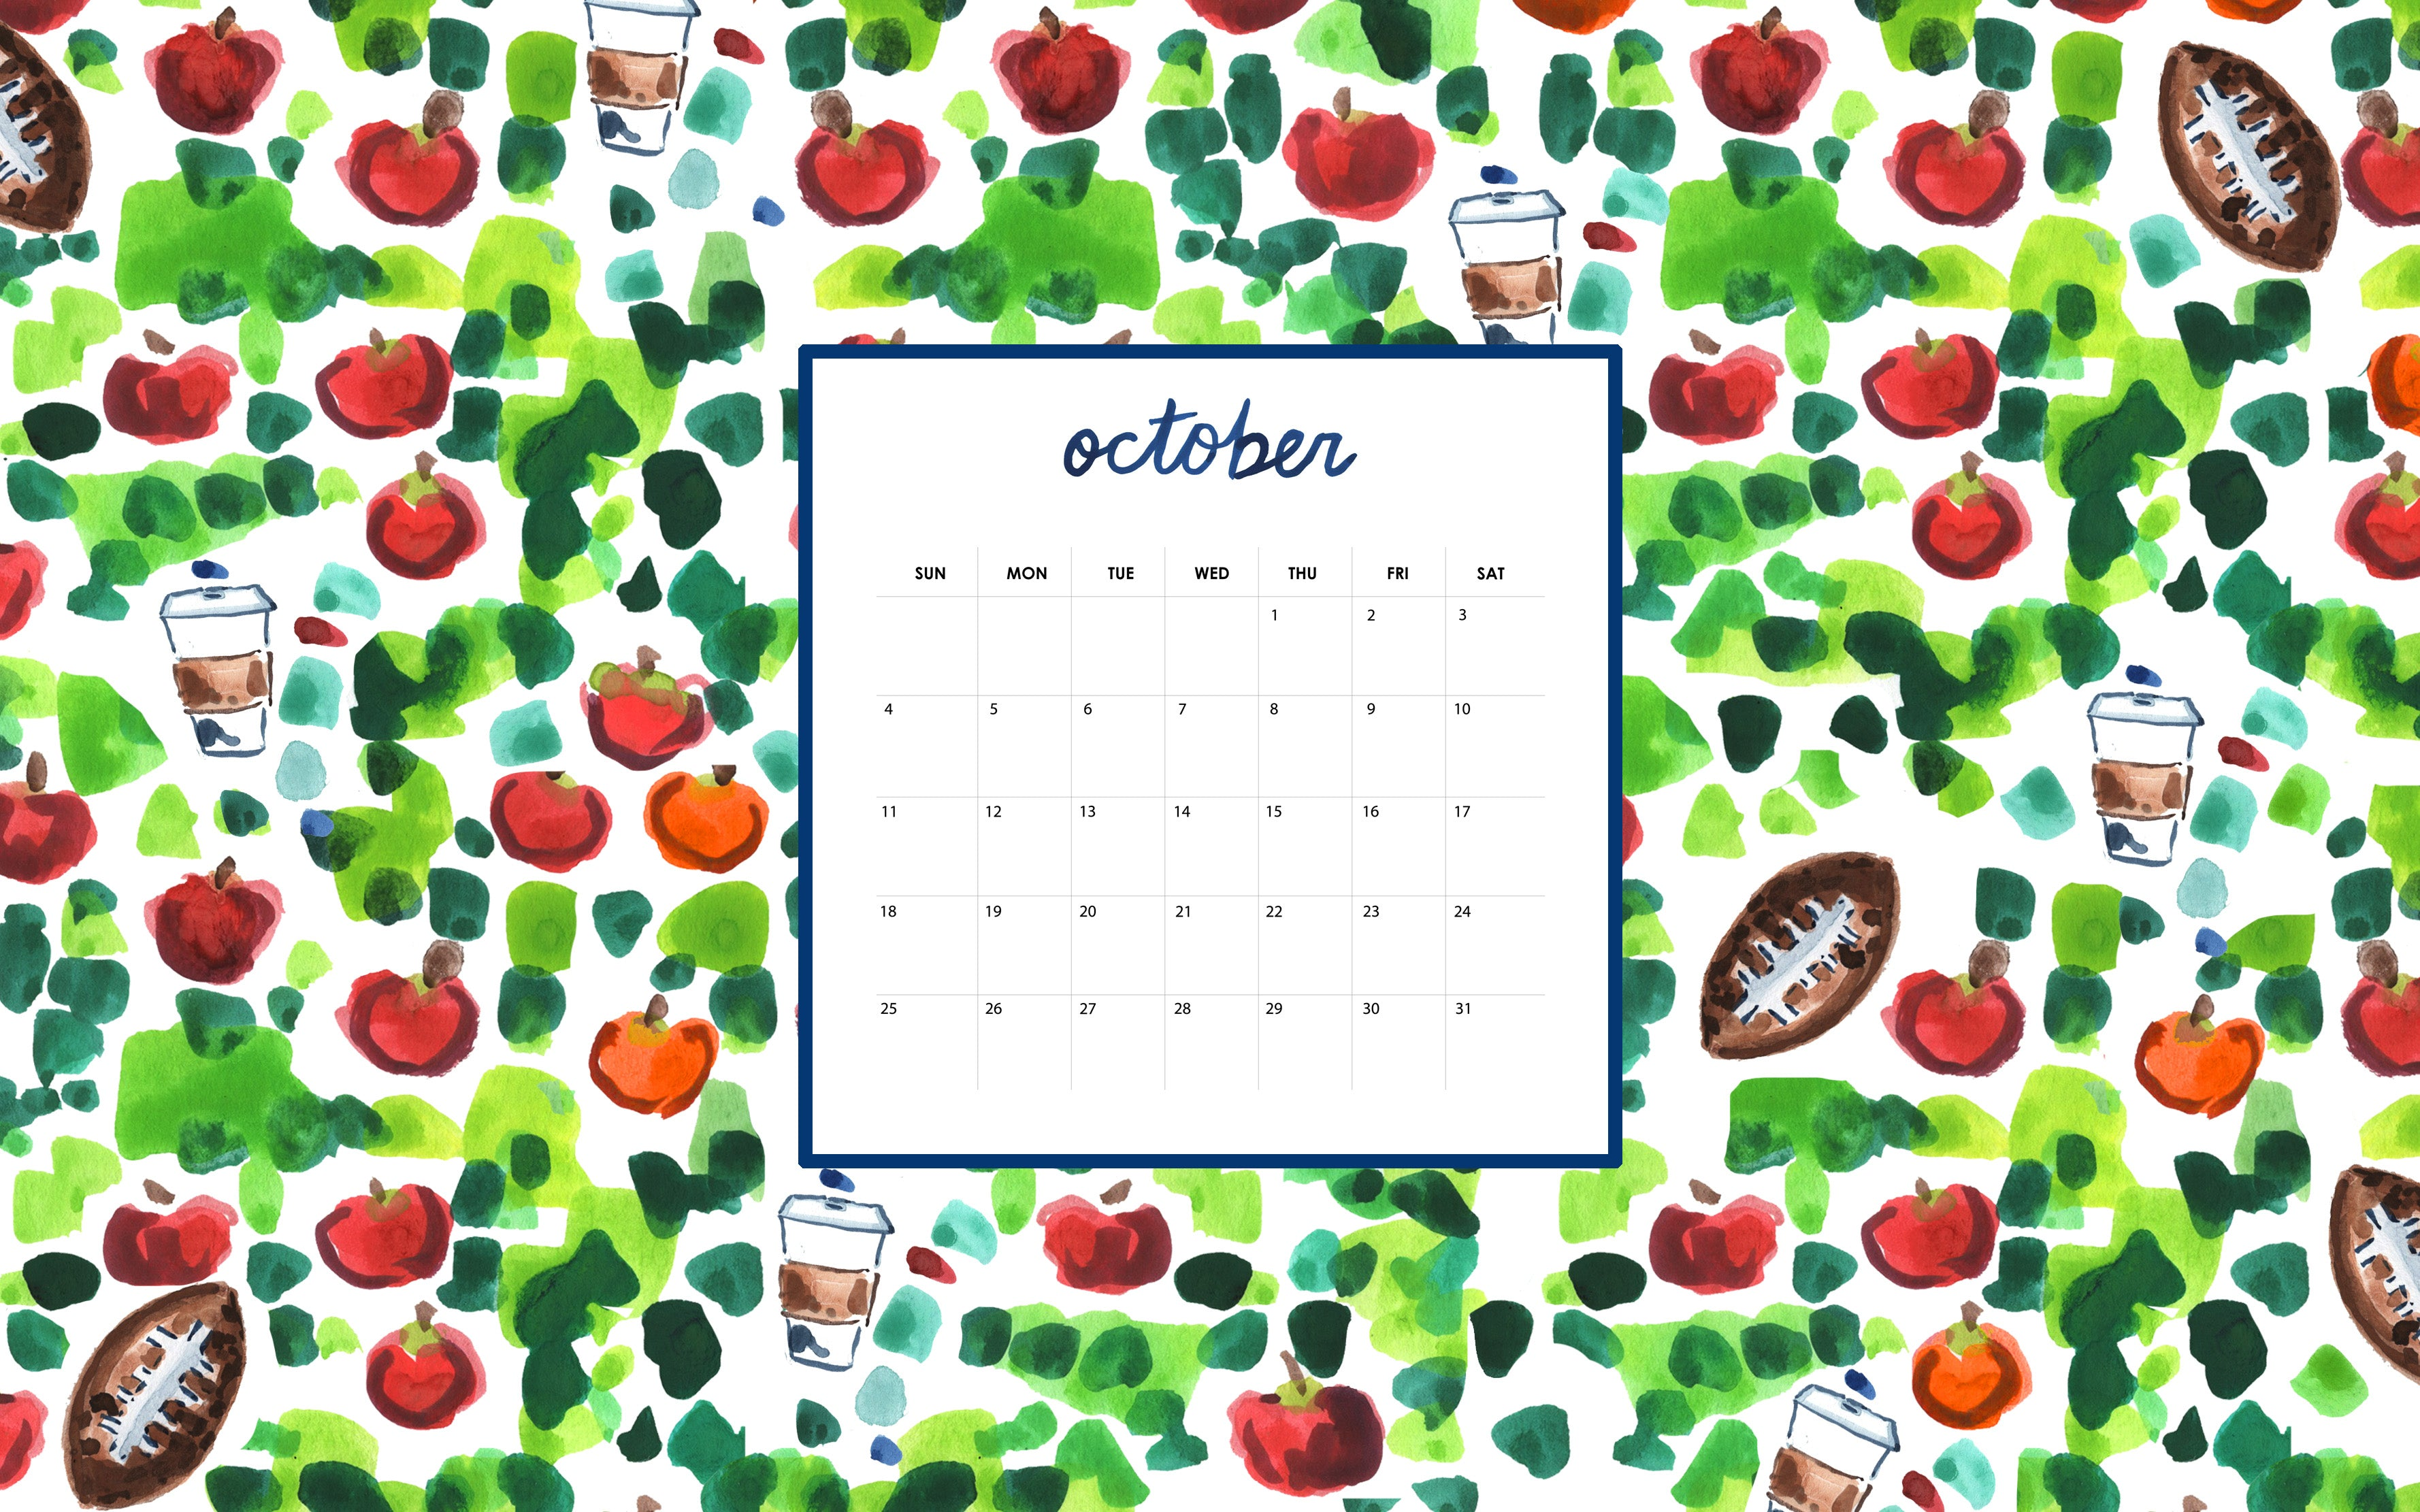 https://cdn.shopify.com/s/files/1/0284/1844/files/calendar-september-desktop.jpg?v=1579354026